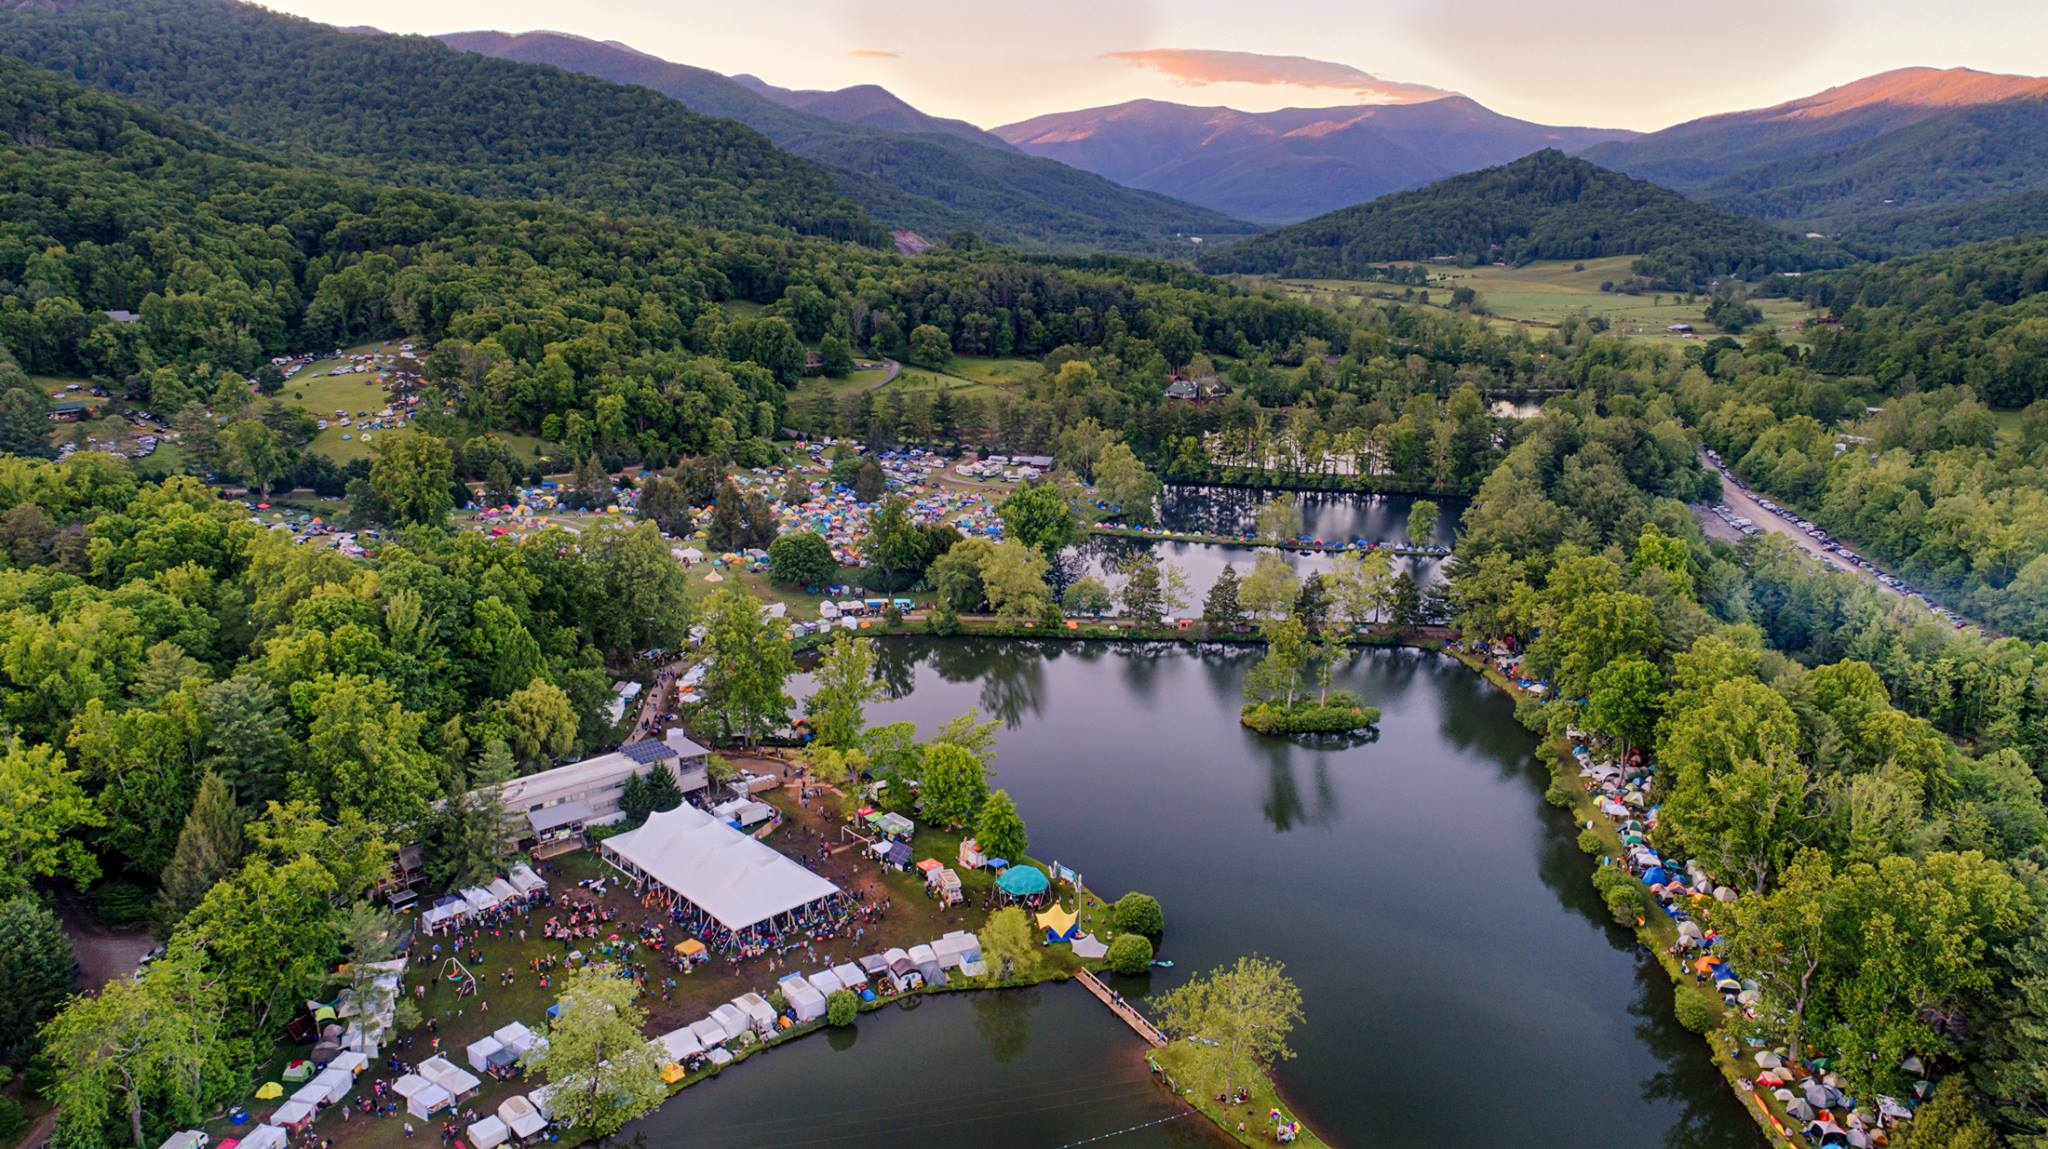 An aerial view of LEAF Festival at Lake Eden in Black Mountain.